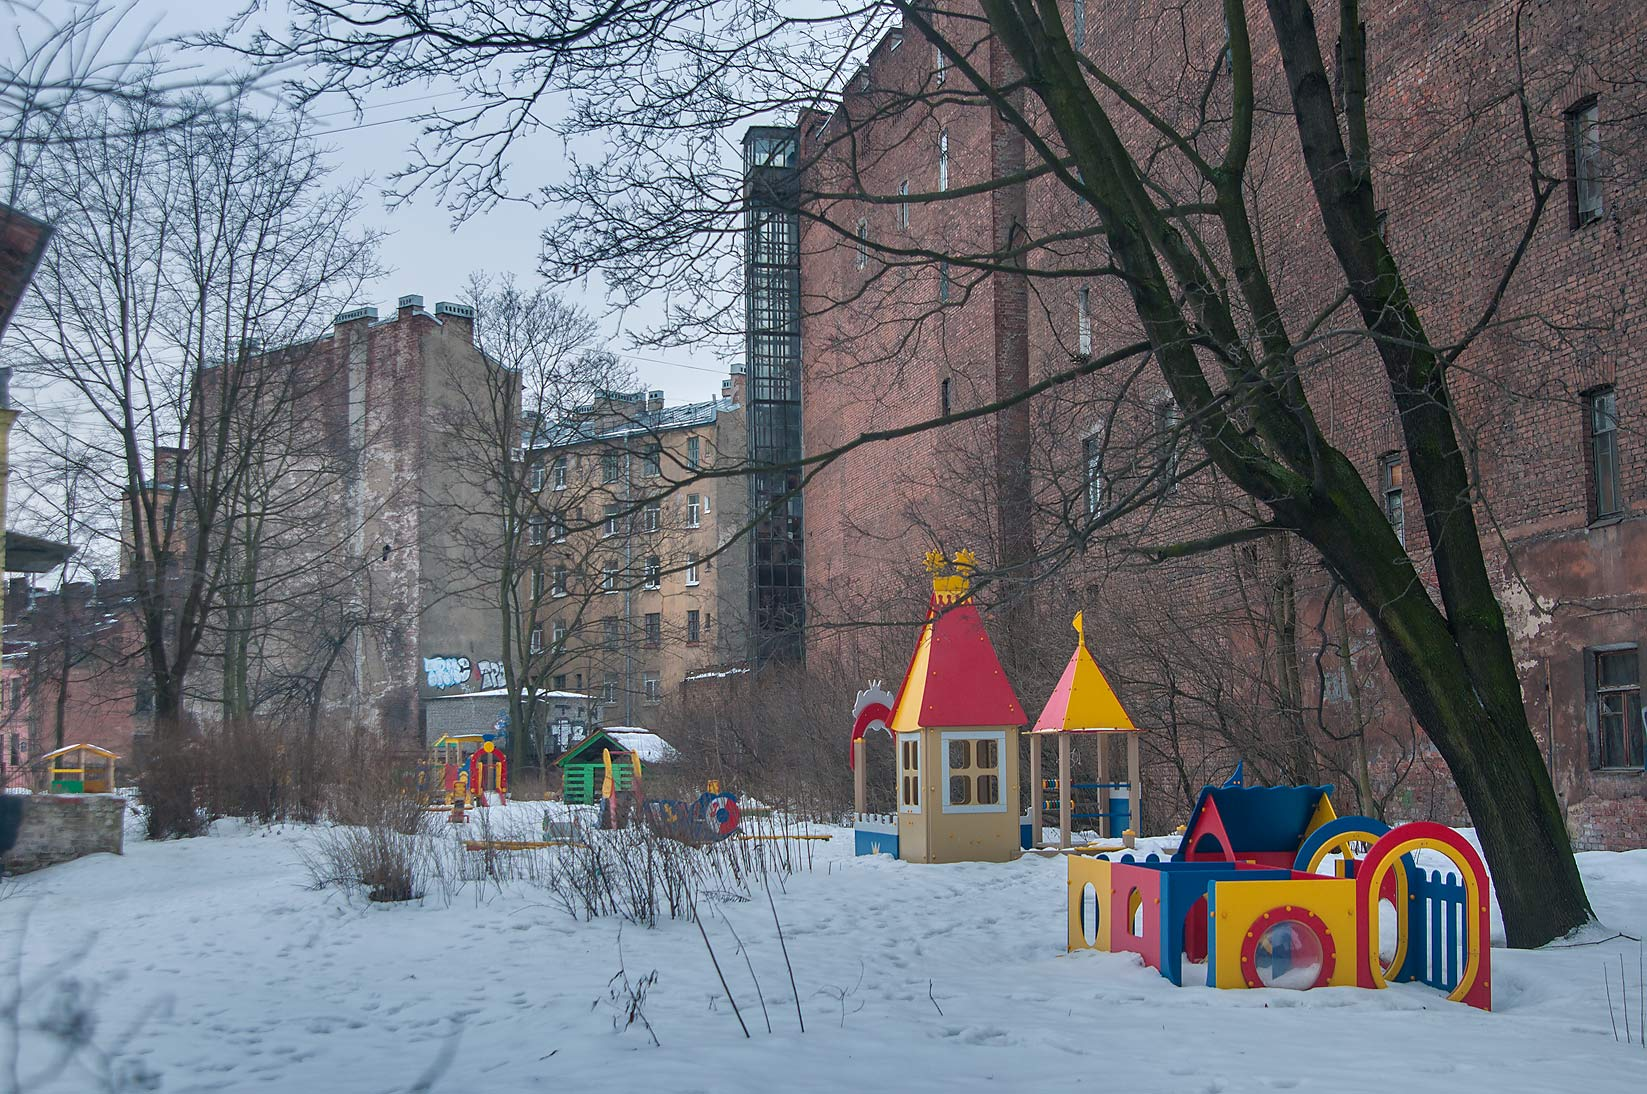 Children's playground on Blagoeva St. in...neighborhood. St.Petersburg, Russia